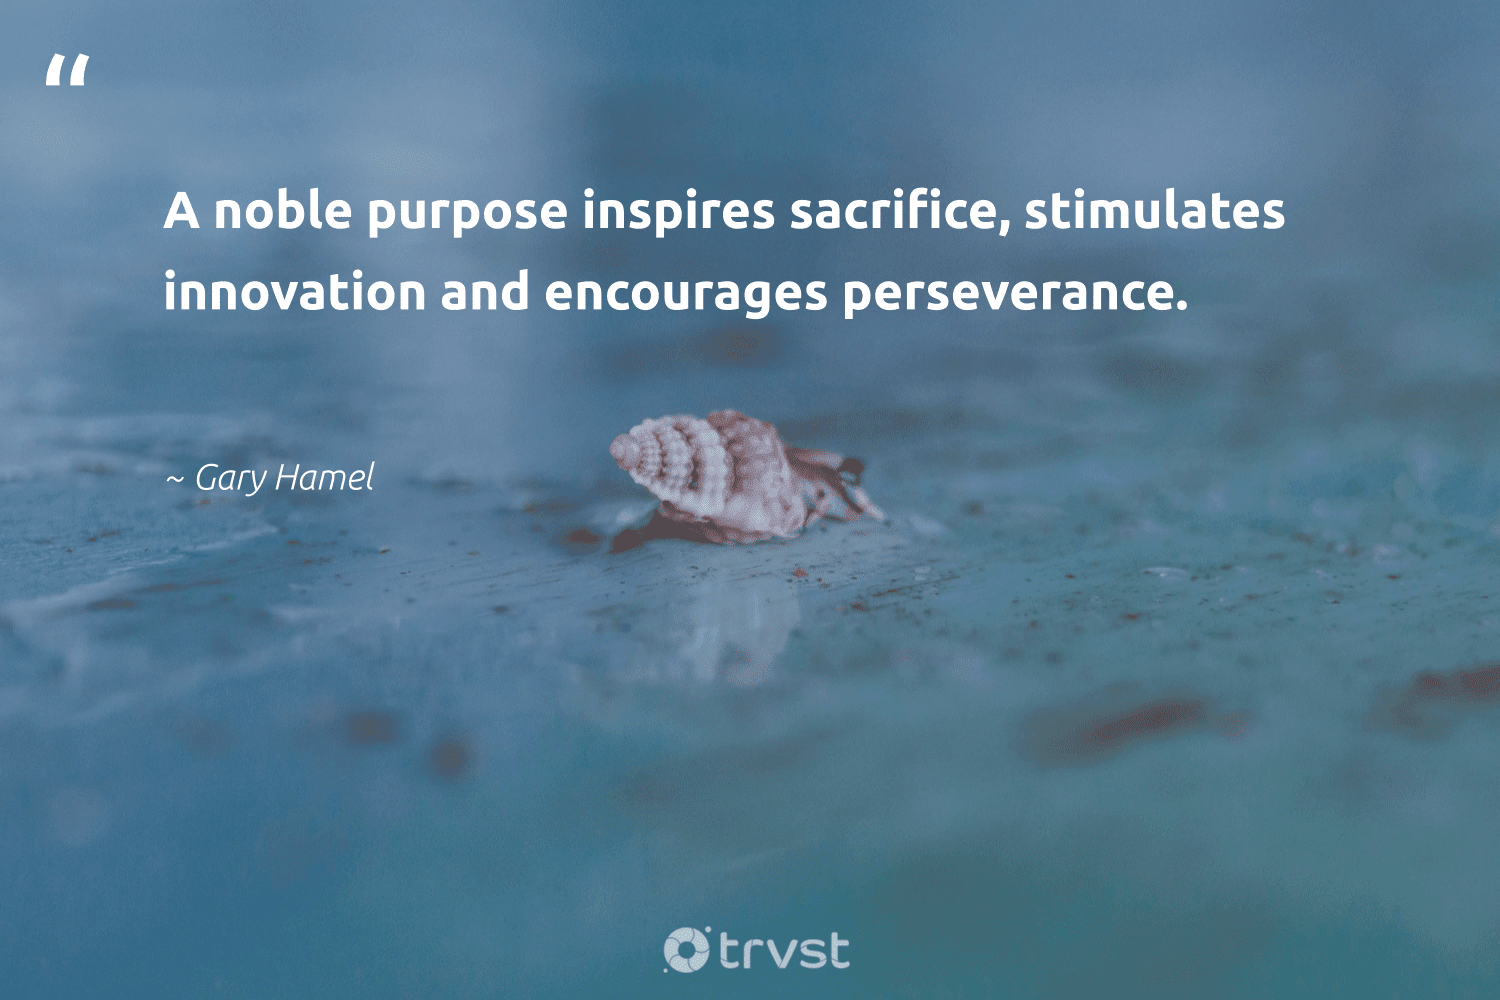 """""""A noble purpose inspires sacrifice, stimulates innovation and encourages perseverance.""""  - Gary Hamel #trvst #quotes #purpose #findingpupose #mindset #nevergiveup #socialchange #purposedriven #begreat #changemakers #collectiveaction #findpurpose"""